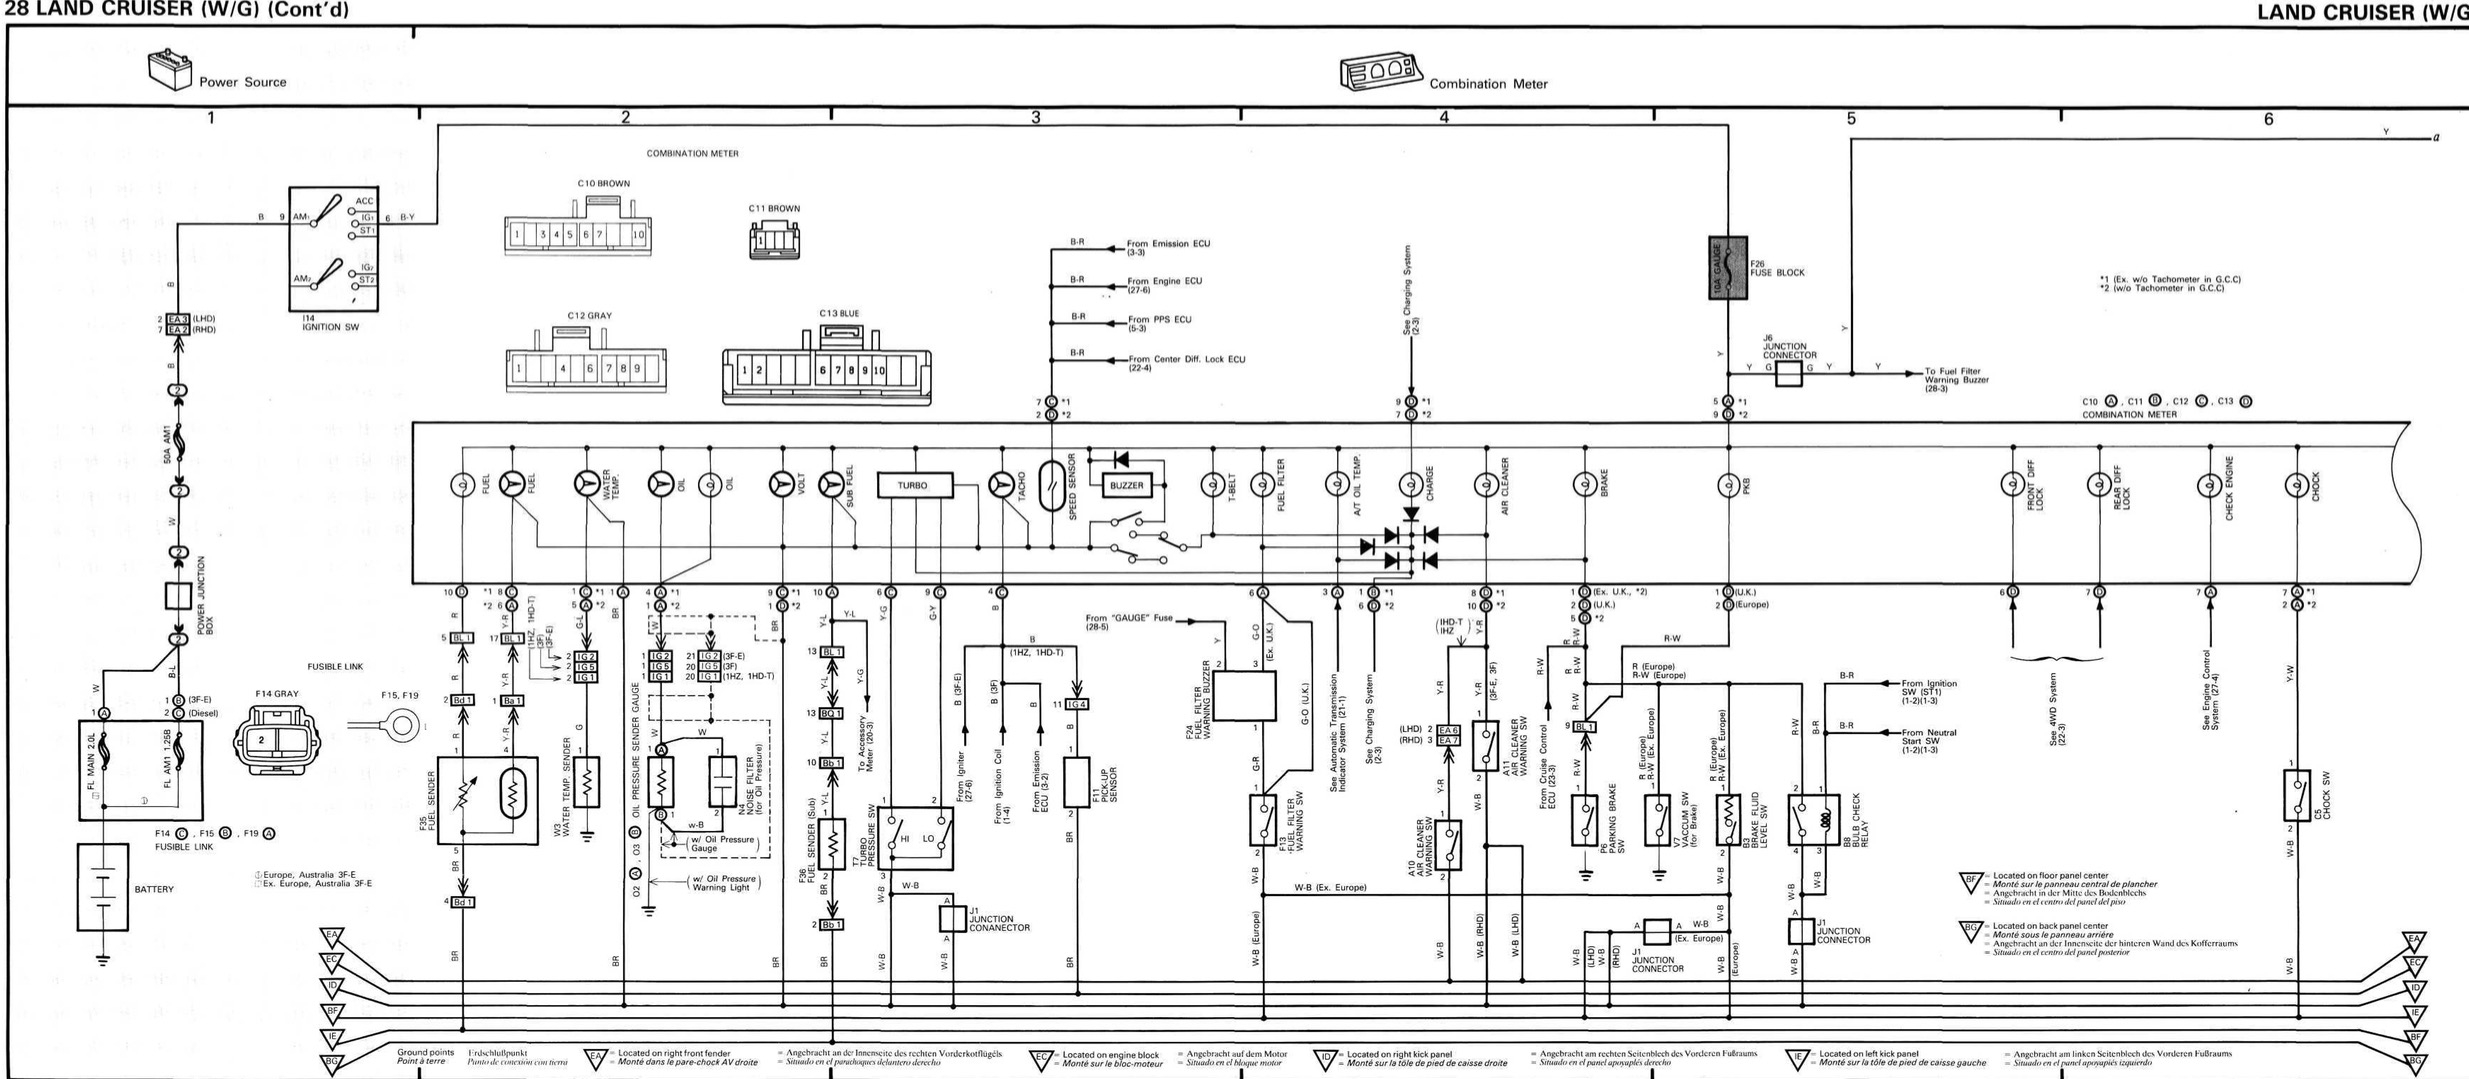 80 series landcruiser wiring diagram 80 series landcruiser wiring diagram at n-0.co